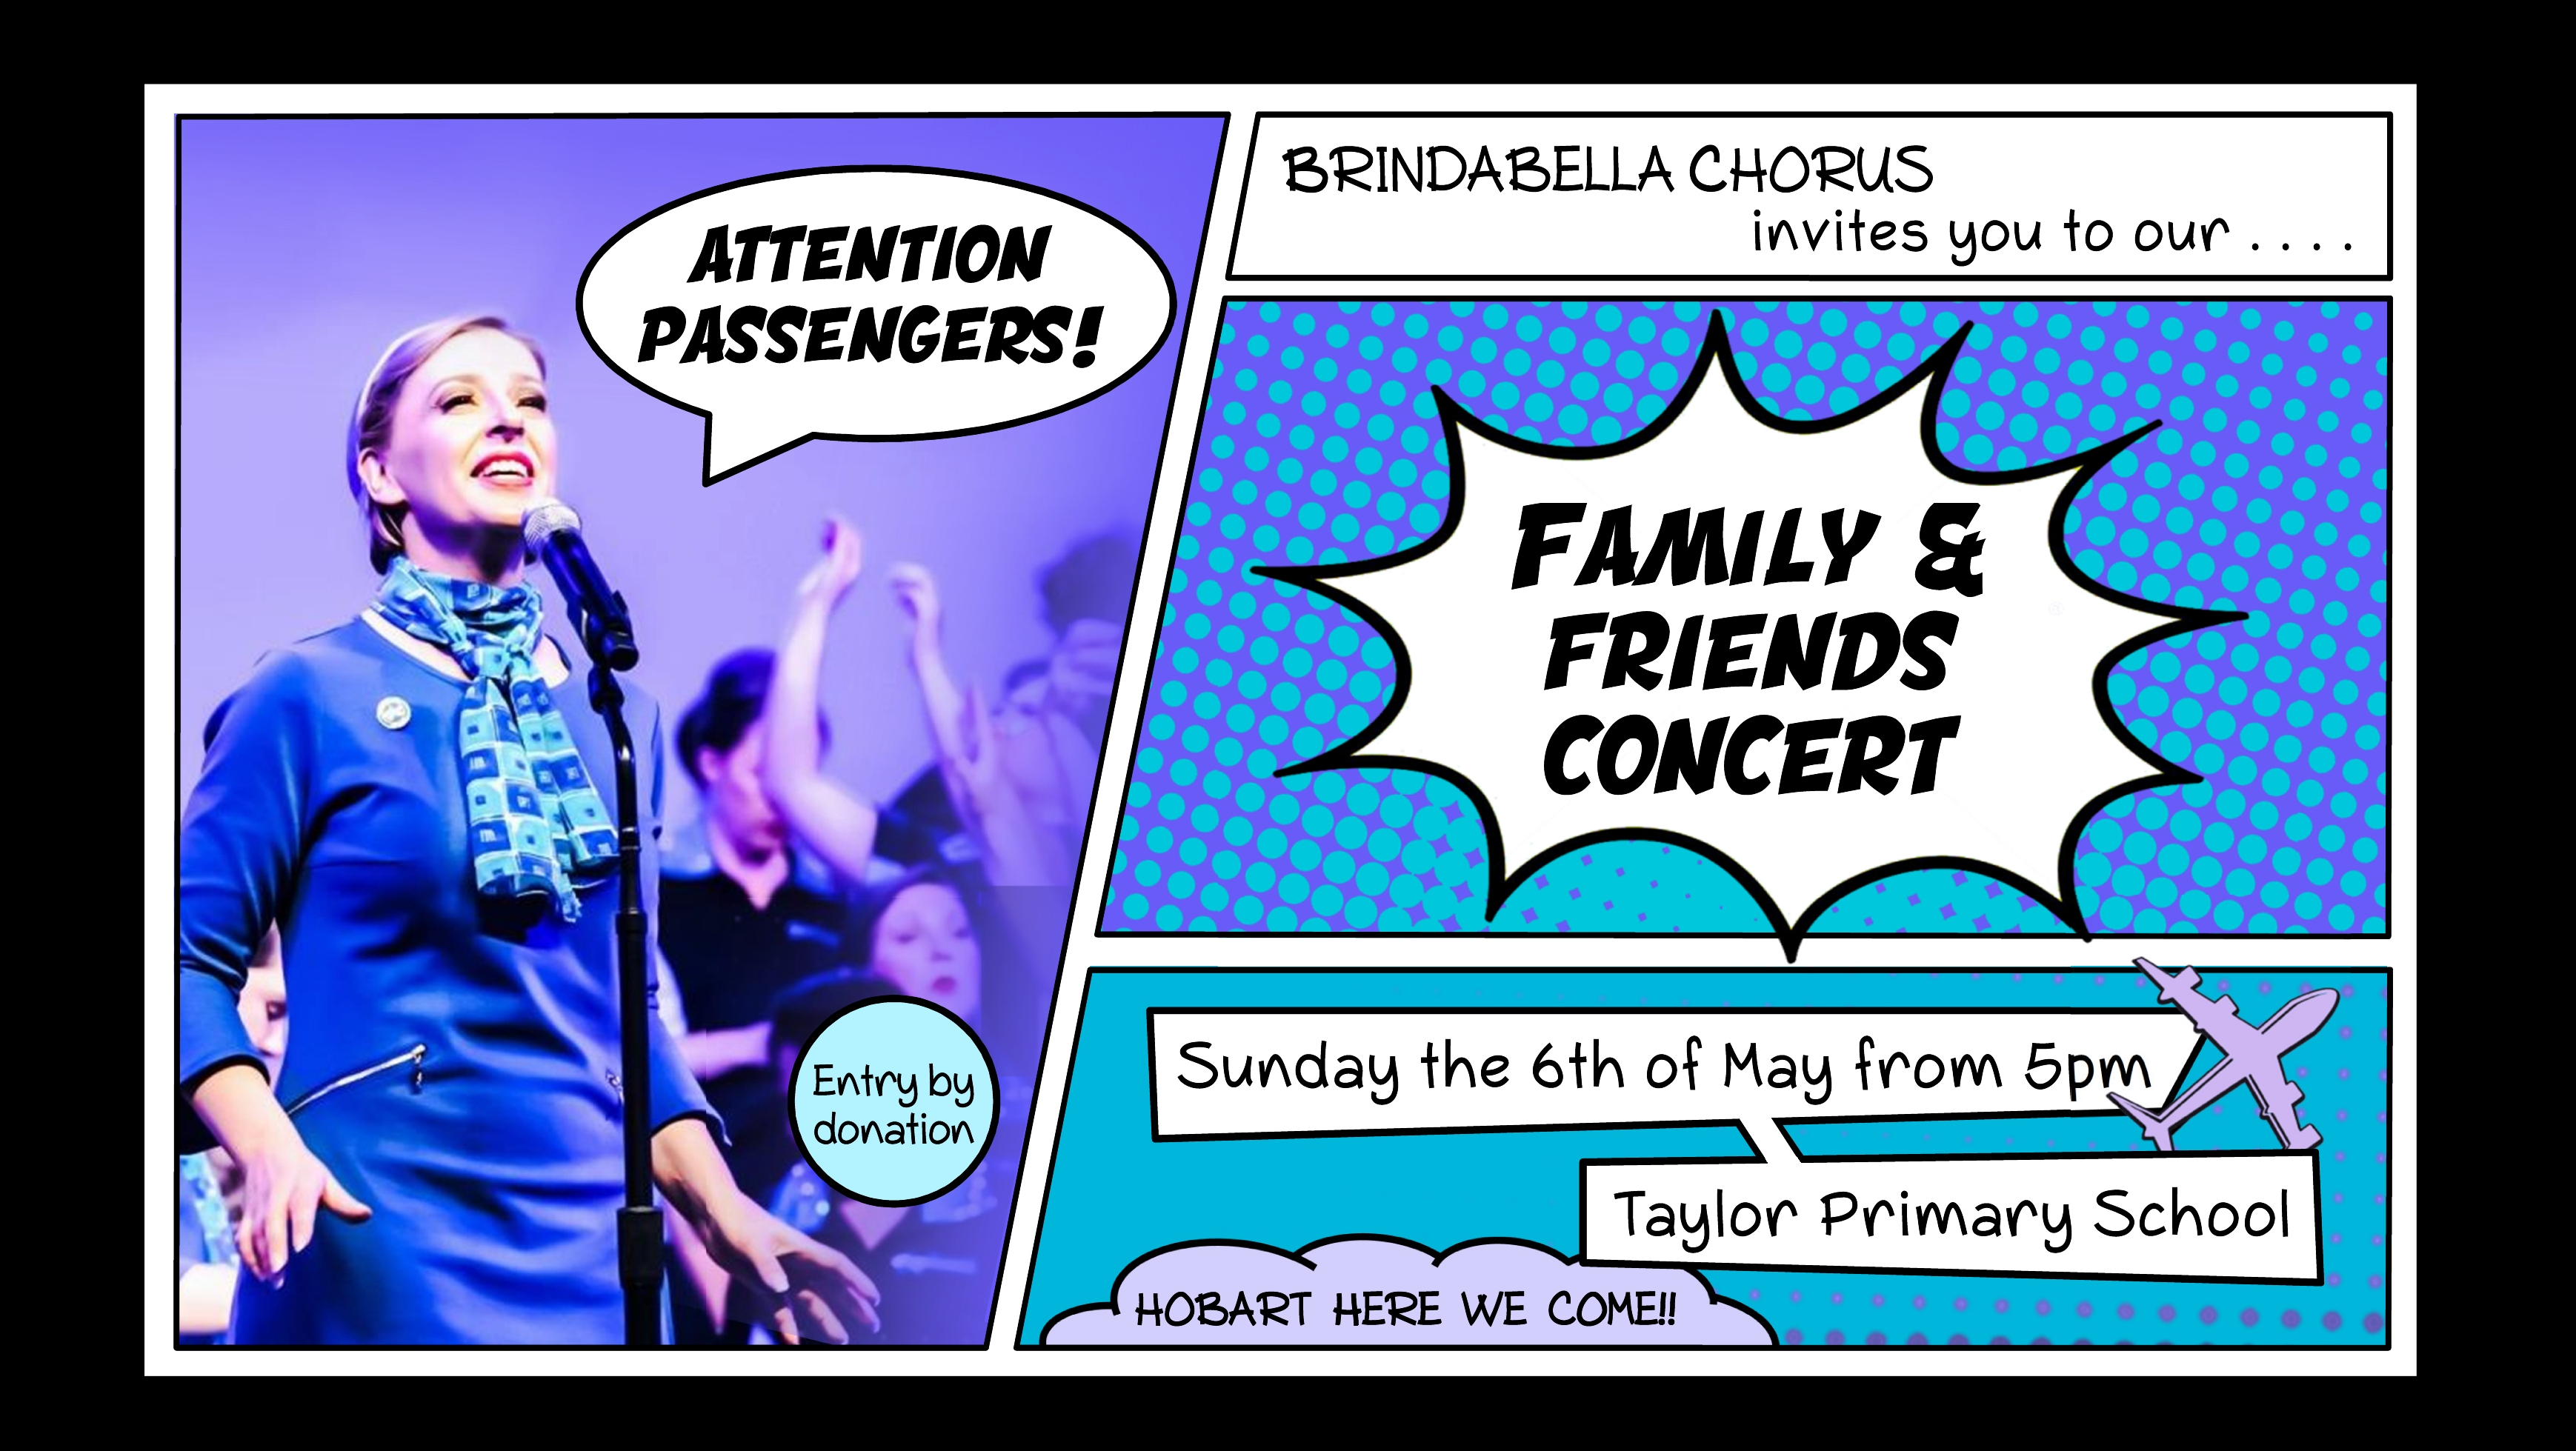 Family & Friends Concert